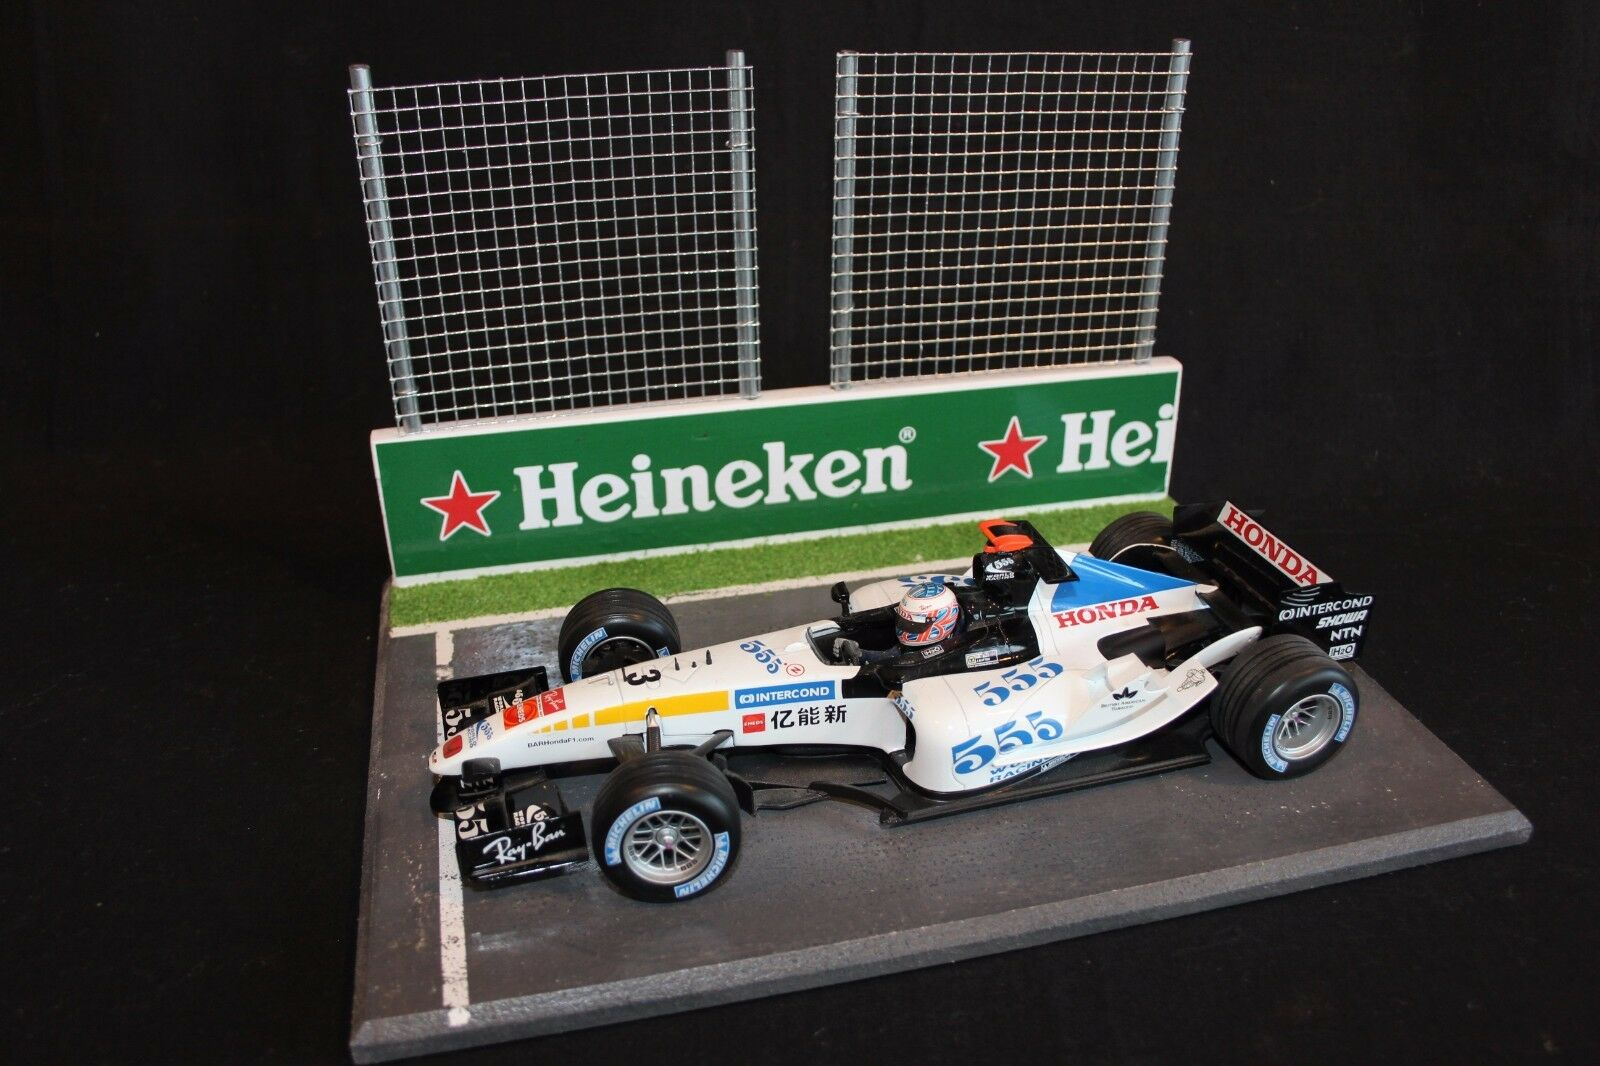 QSP Diorama 1 18 Starting grid with wall and 2 high fences (Heineken)